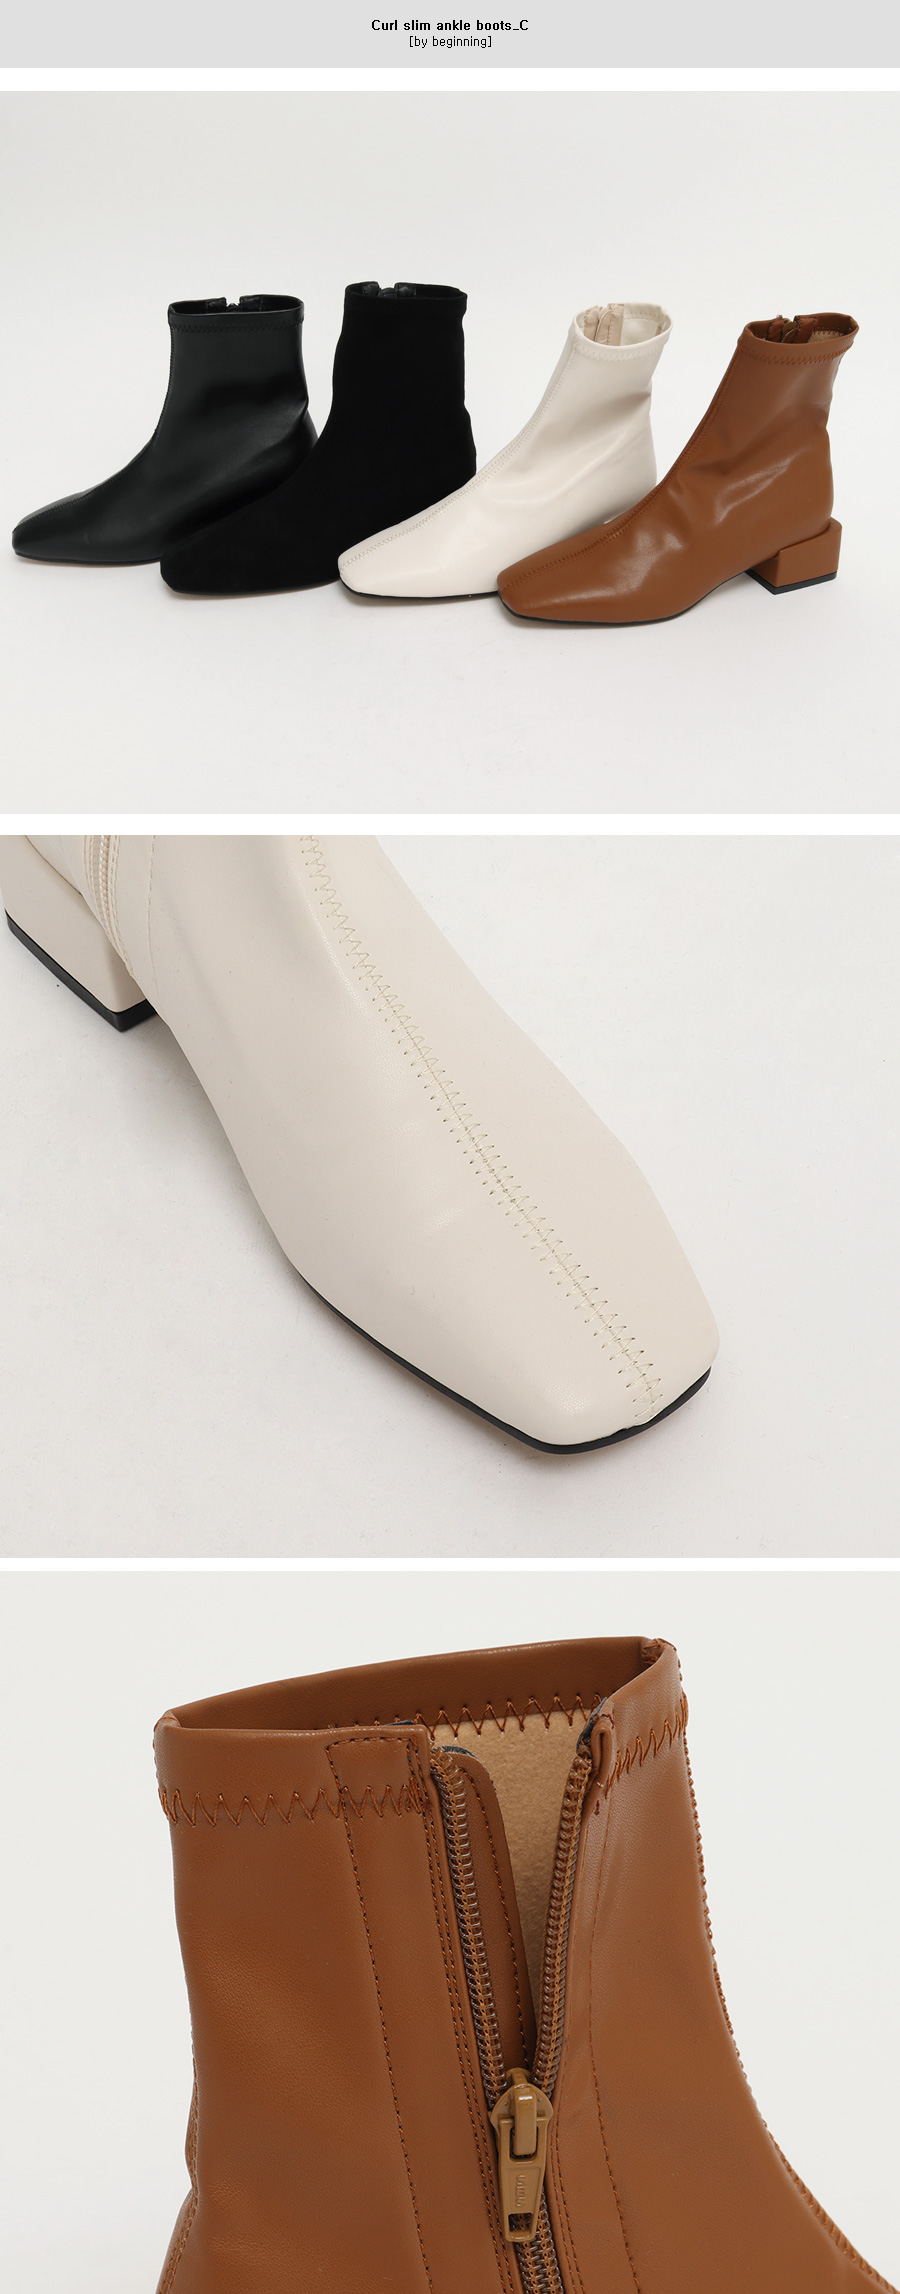 Curl slim ankle boots_C